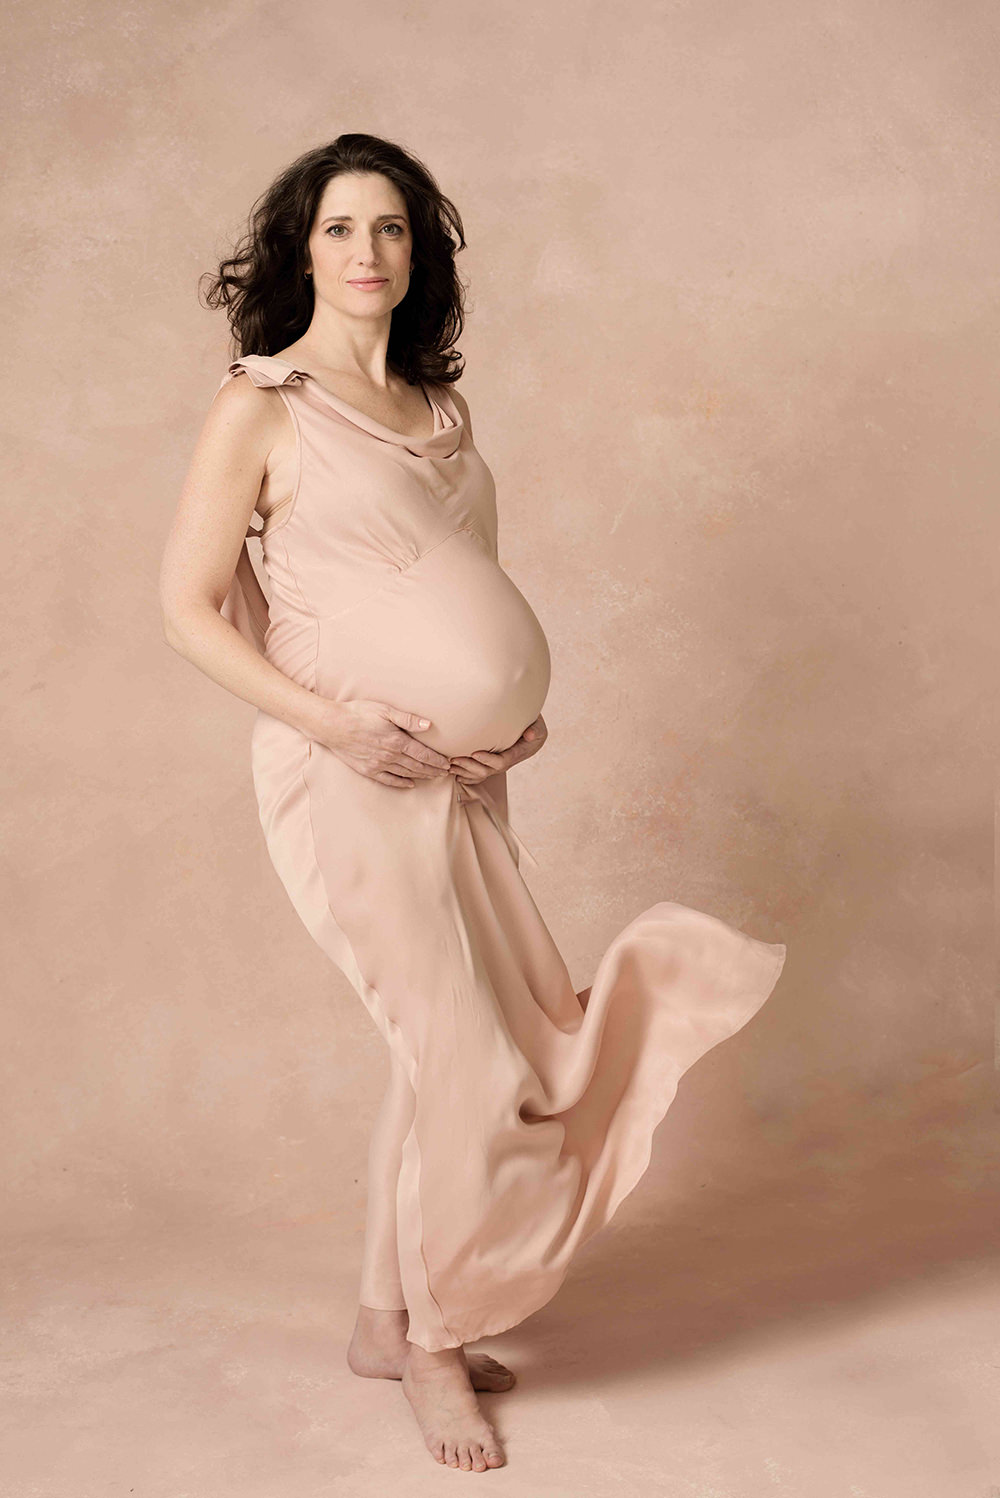 brunette pregnant woman wearing a blush dress against a blush background